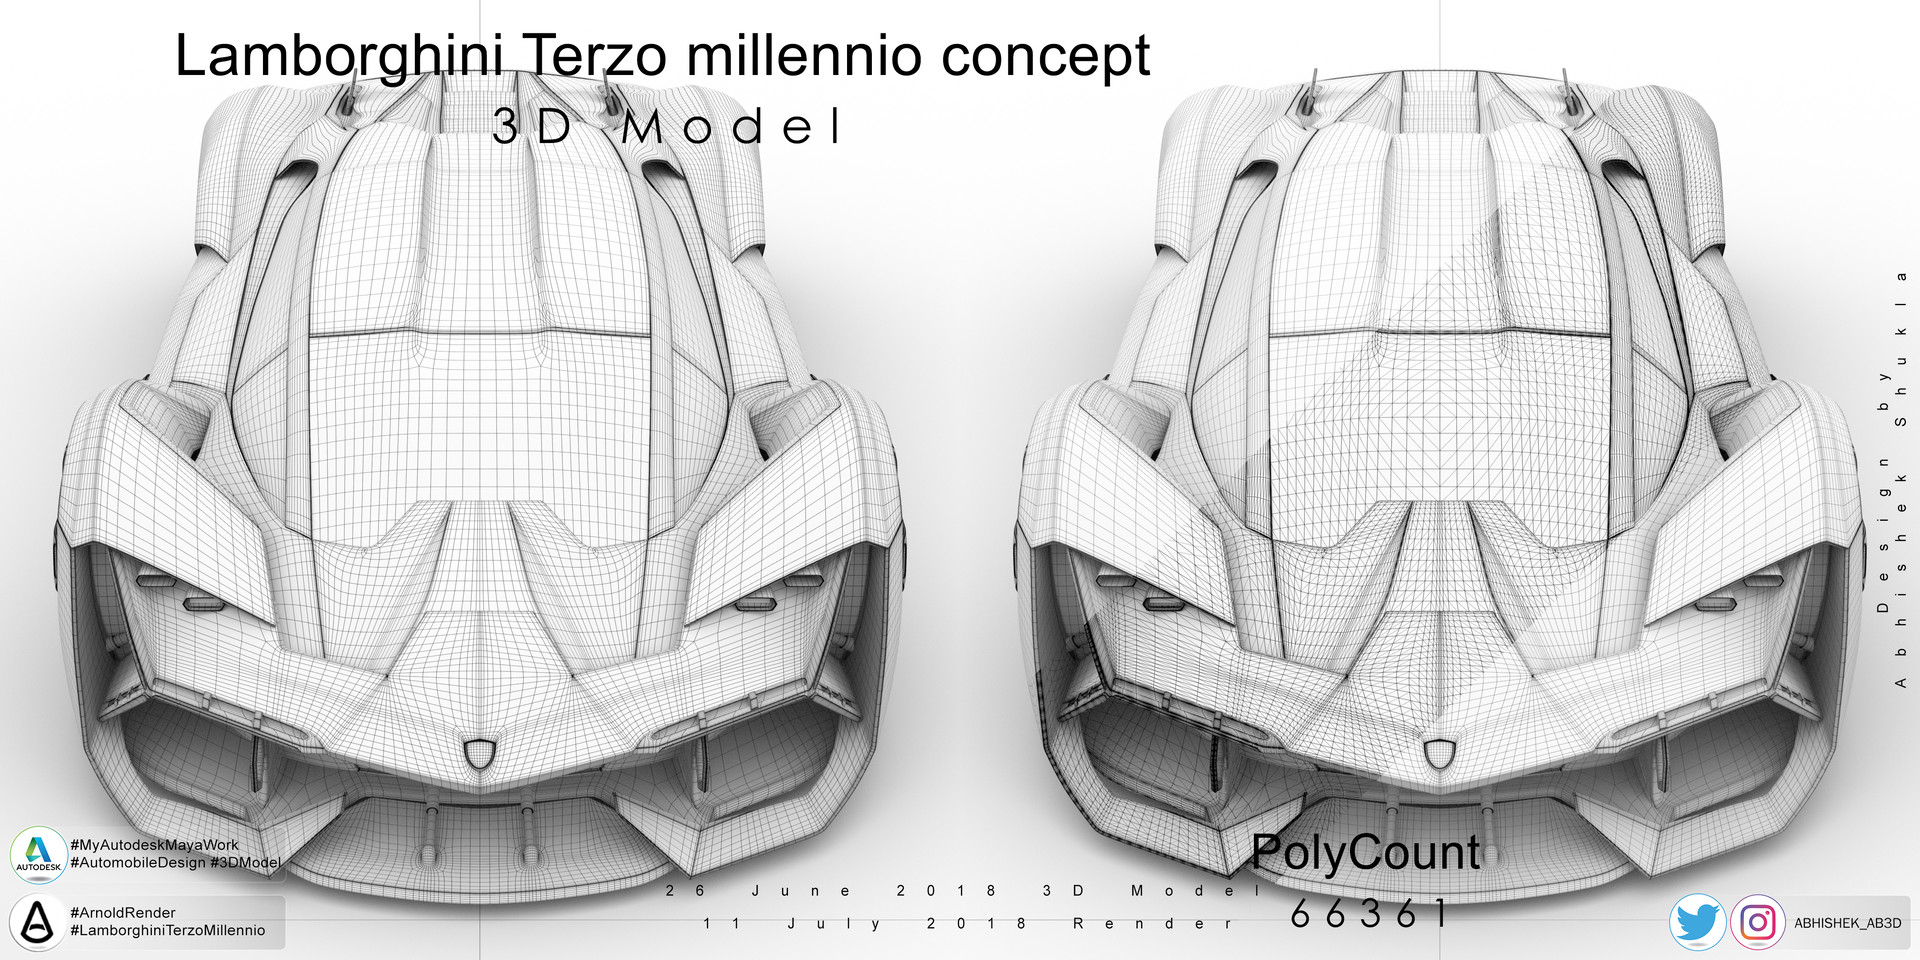 small resolution of lamborghini terzo millennio 3d model front view as smooth polygon view with wireframe